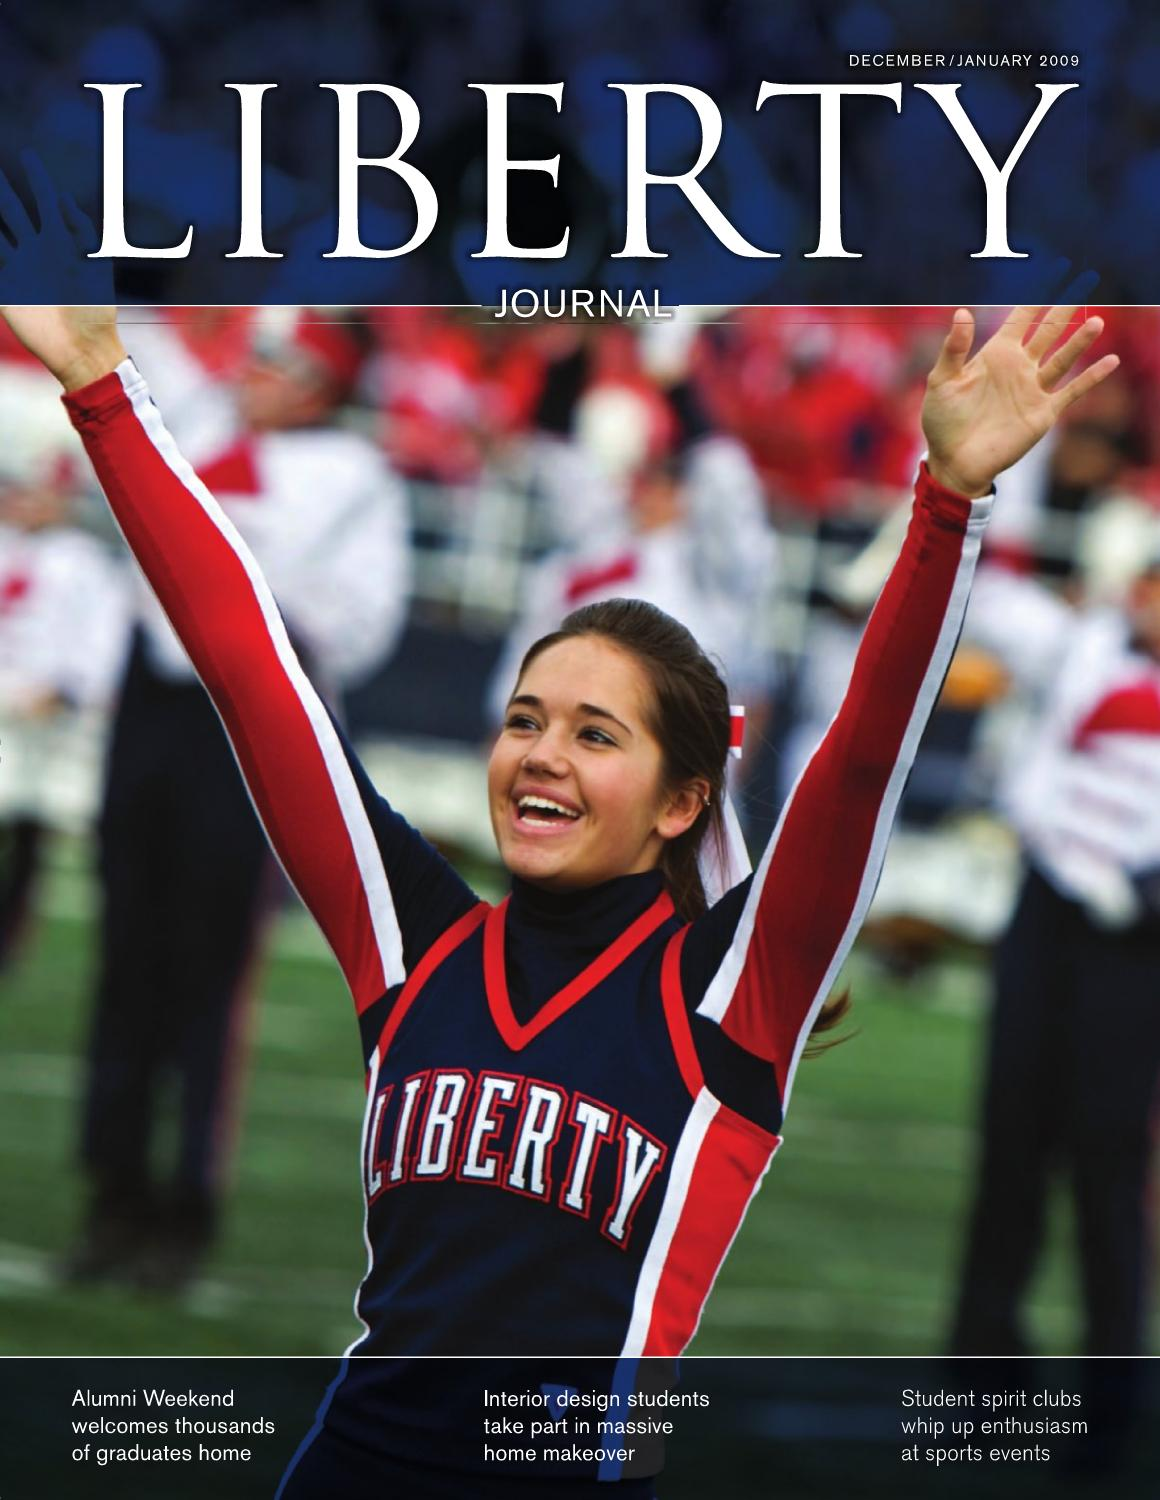 Liberty Journal December January 2009 by Liberty University - issuu b21222739